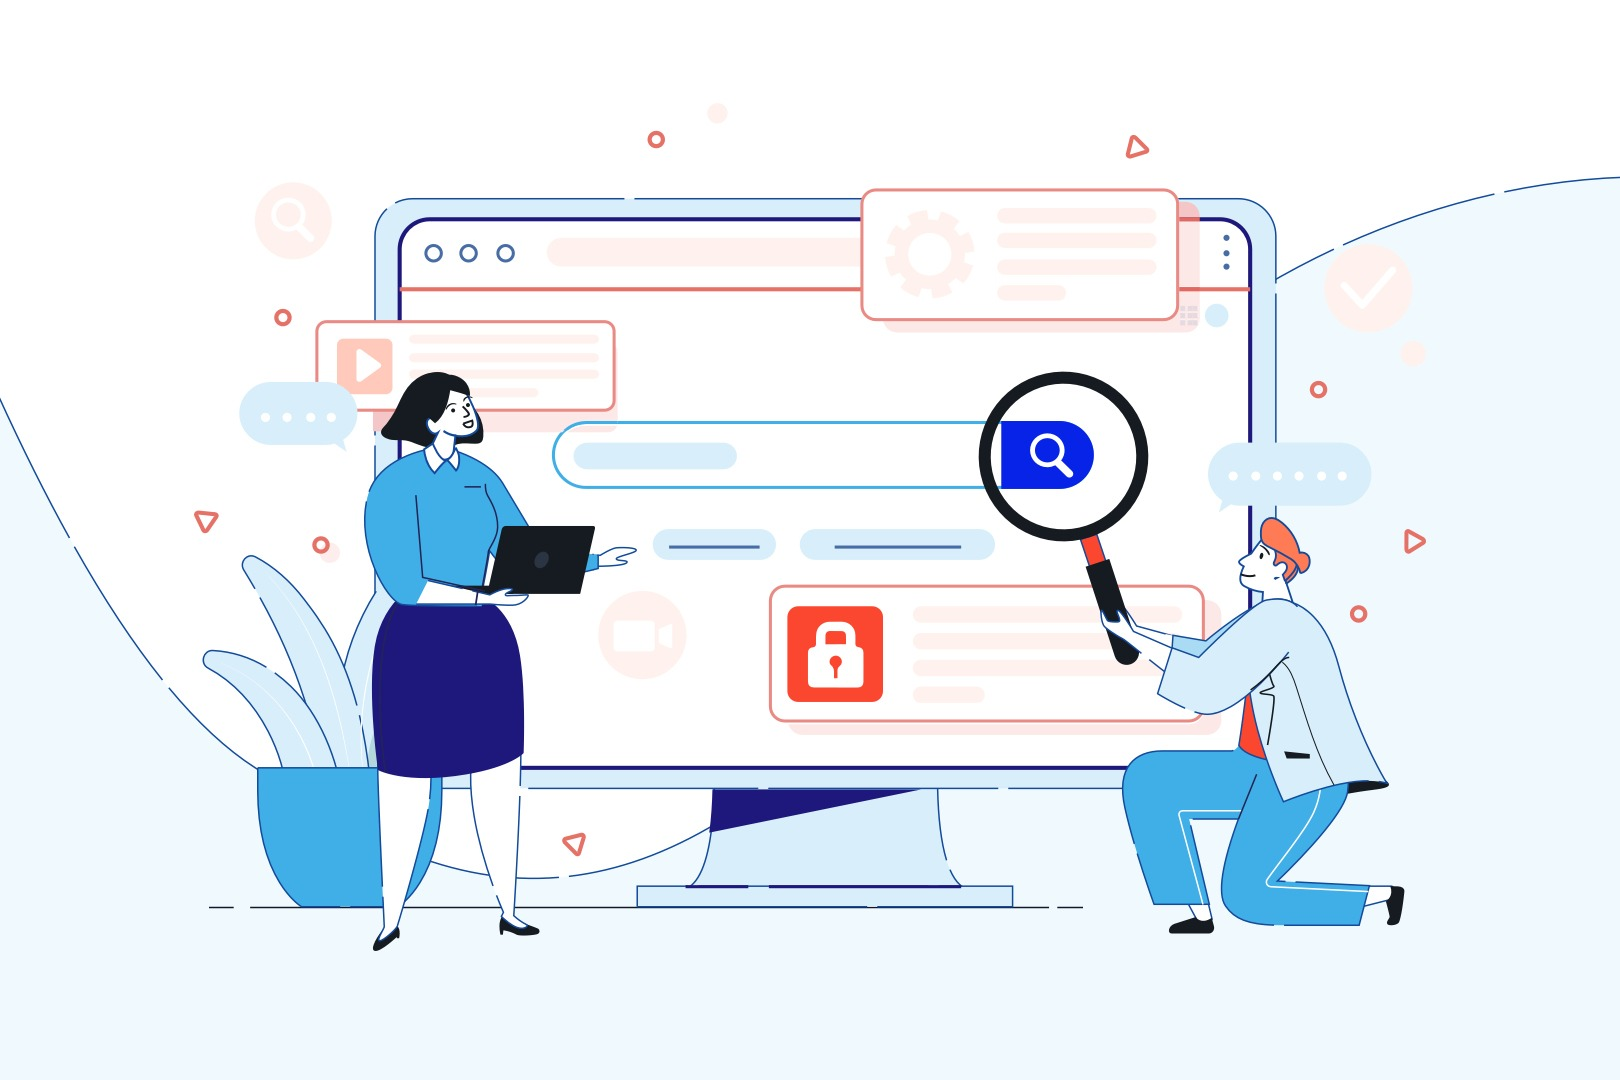 Web application security testing and its role in Quality Assurance